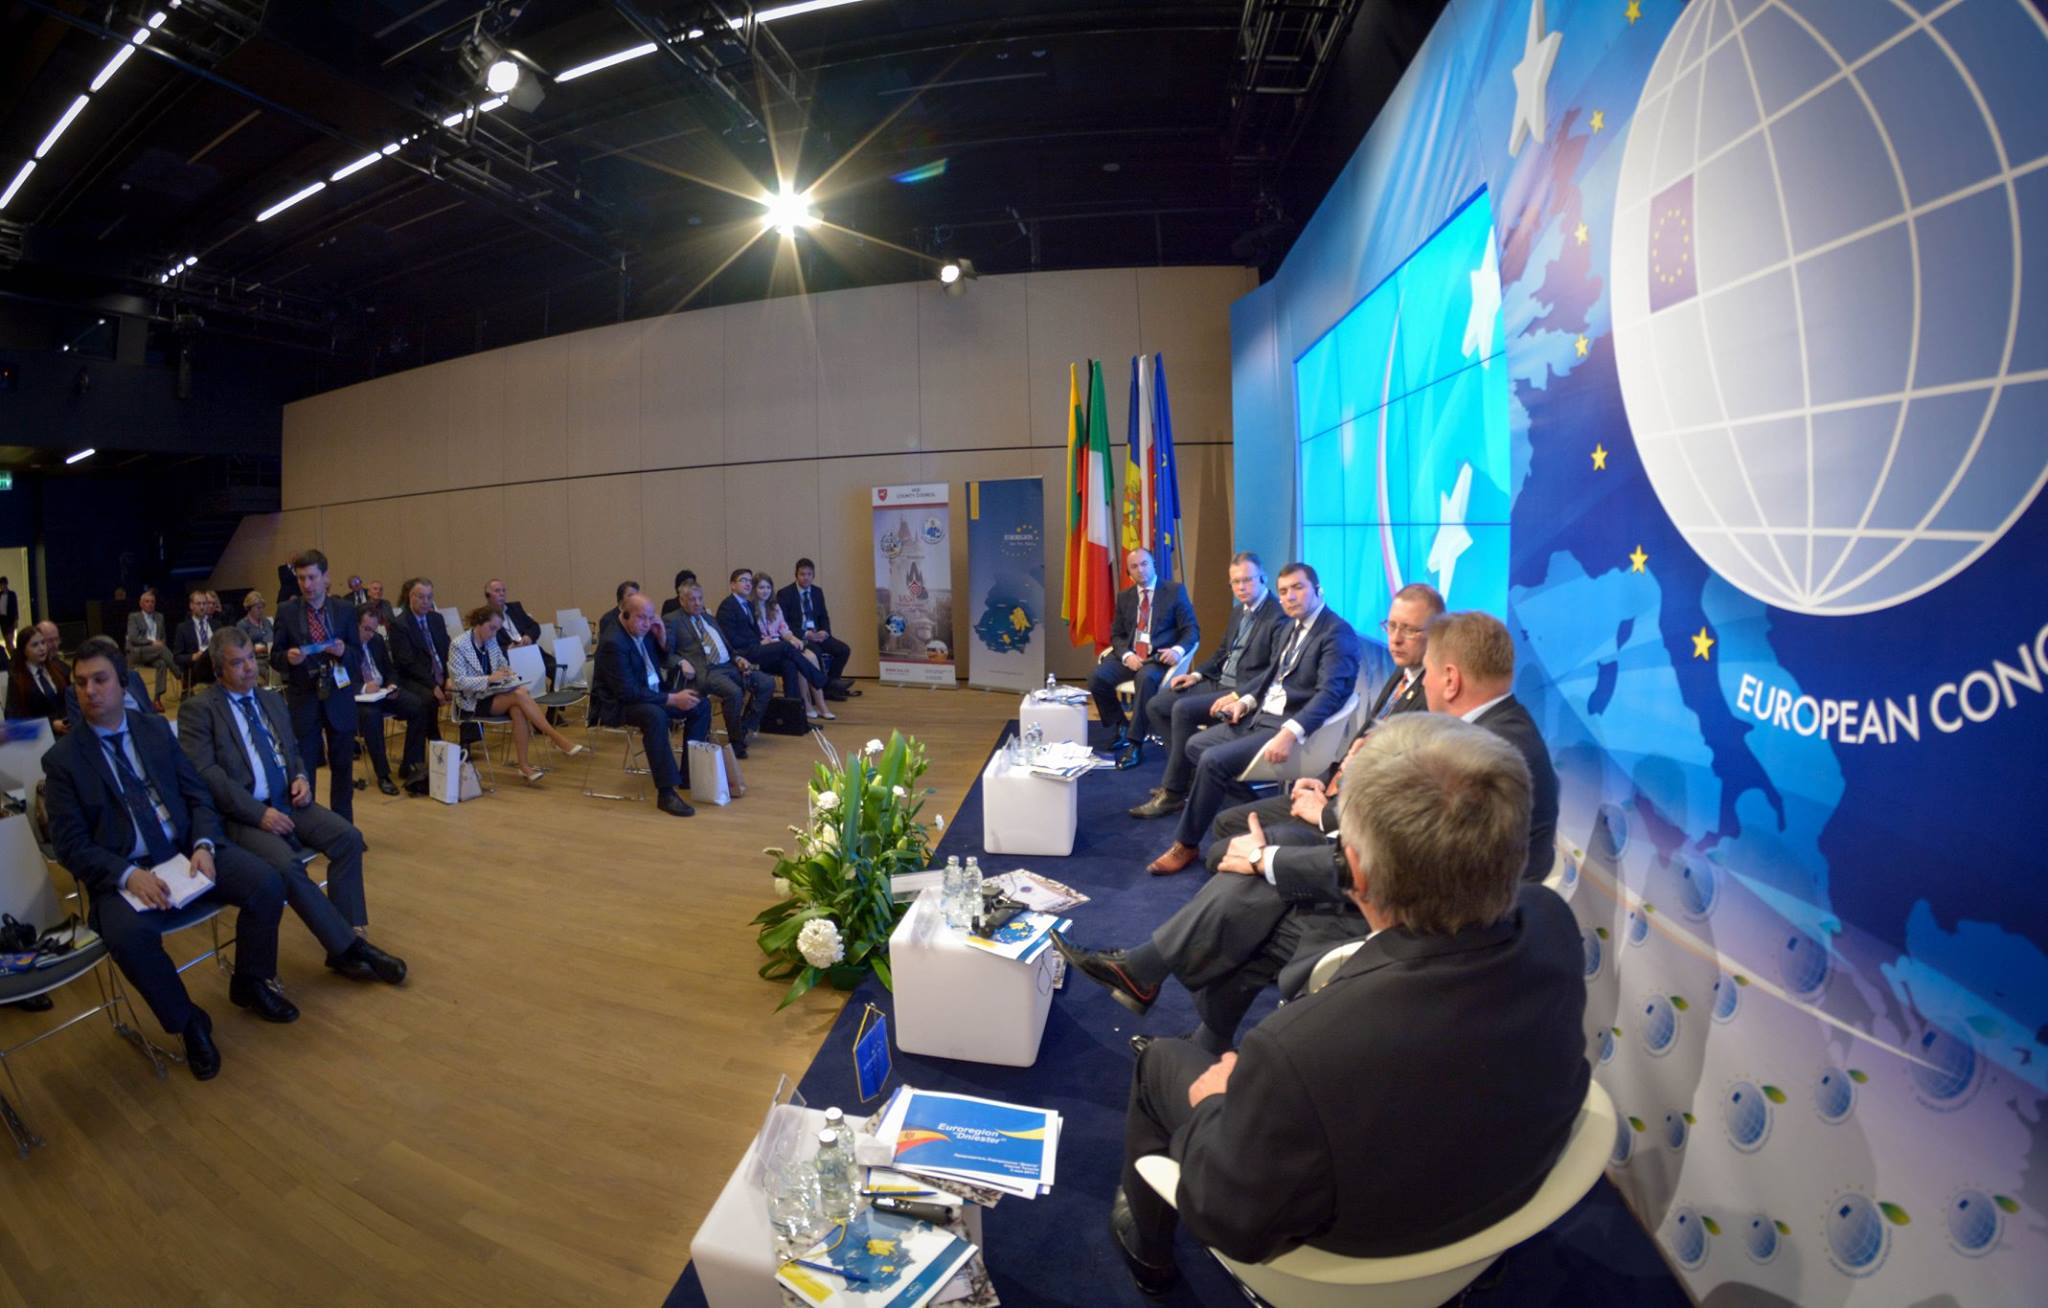 "<a class=""amazingslider-posttitle-link"" href=""http://www.euroregiune.org/en/european-congress-local-authorities-krakow-4-5-may-2015/"" target=""_self"">European Congress of Local Authorities - Krakow, 4-5 May 2015</a>"